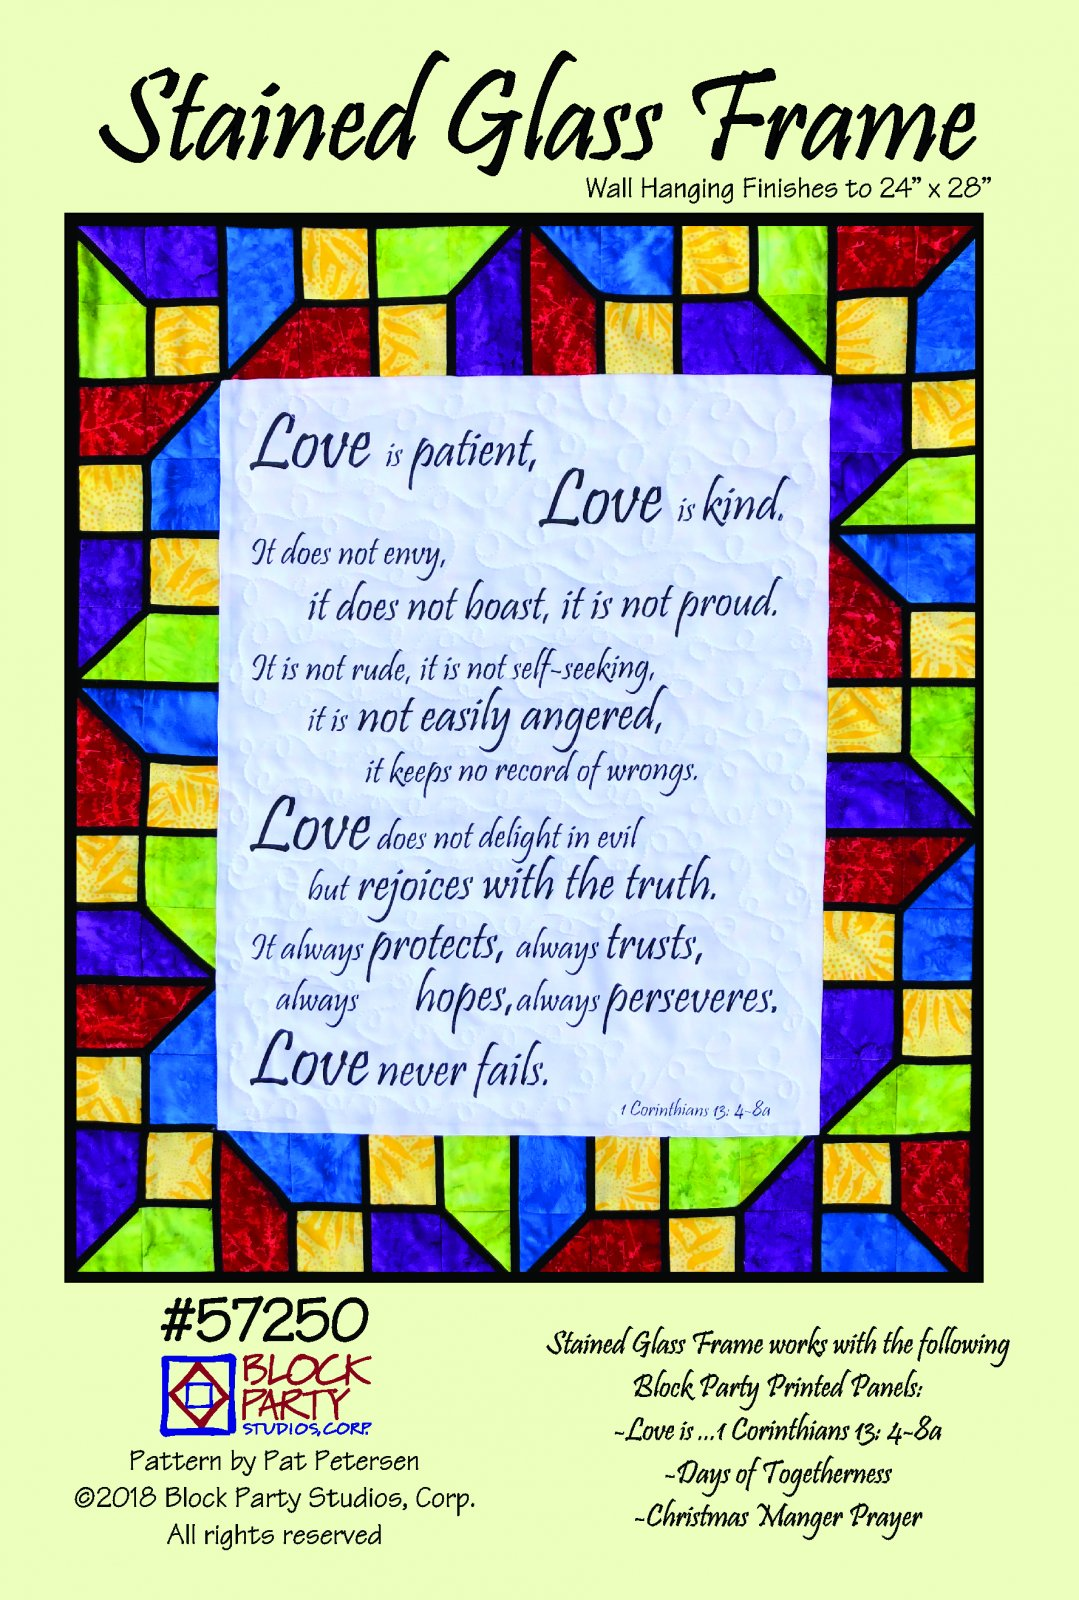 Love Is.... 1 Corinthians 13 Fabric Panel & Stained Glass Pattern